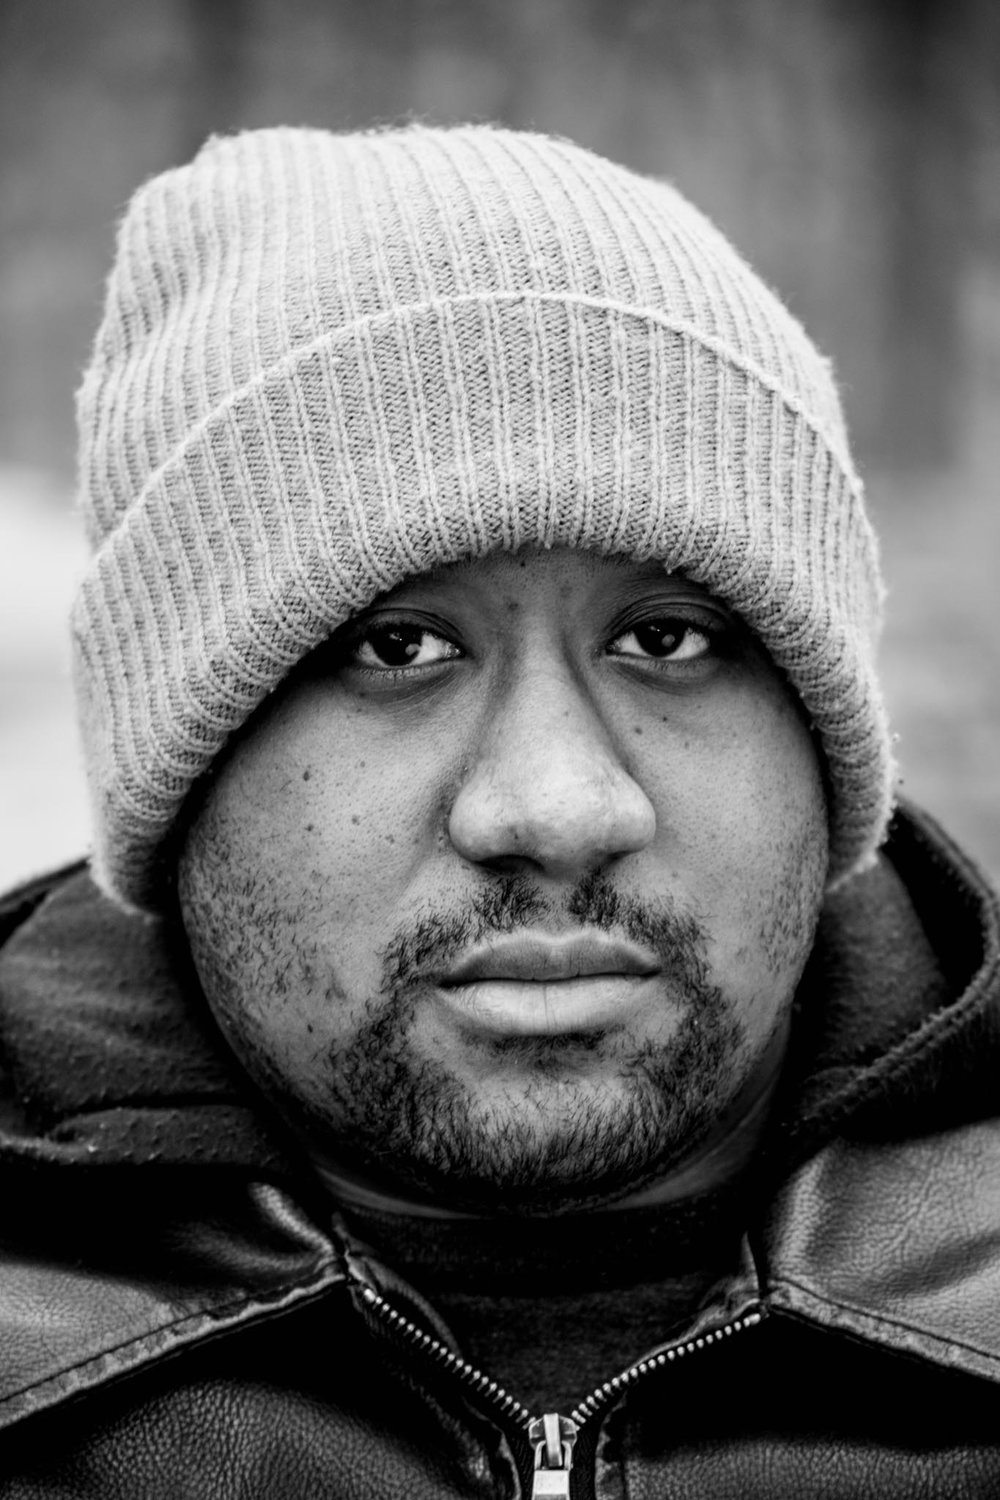 black and white photo of black man in colder outdoor setting wearing a knitted bean cap